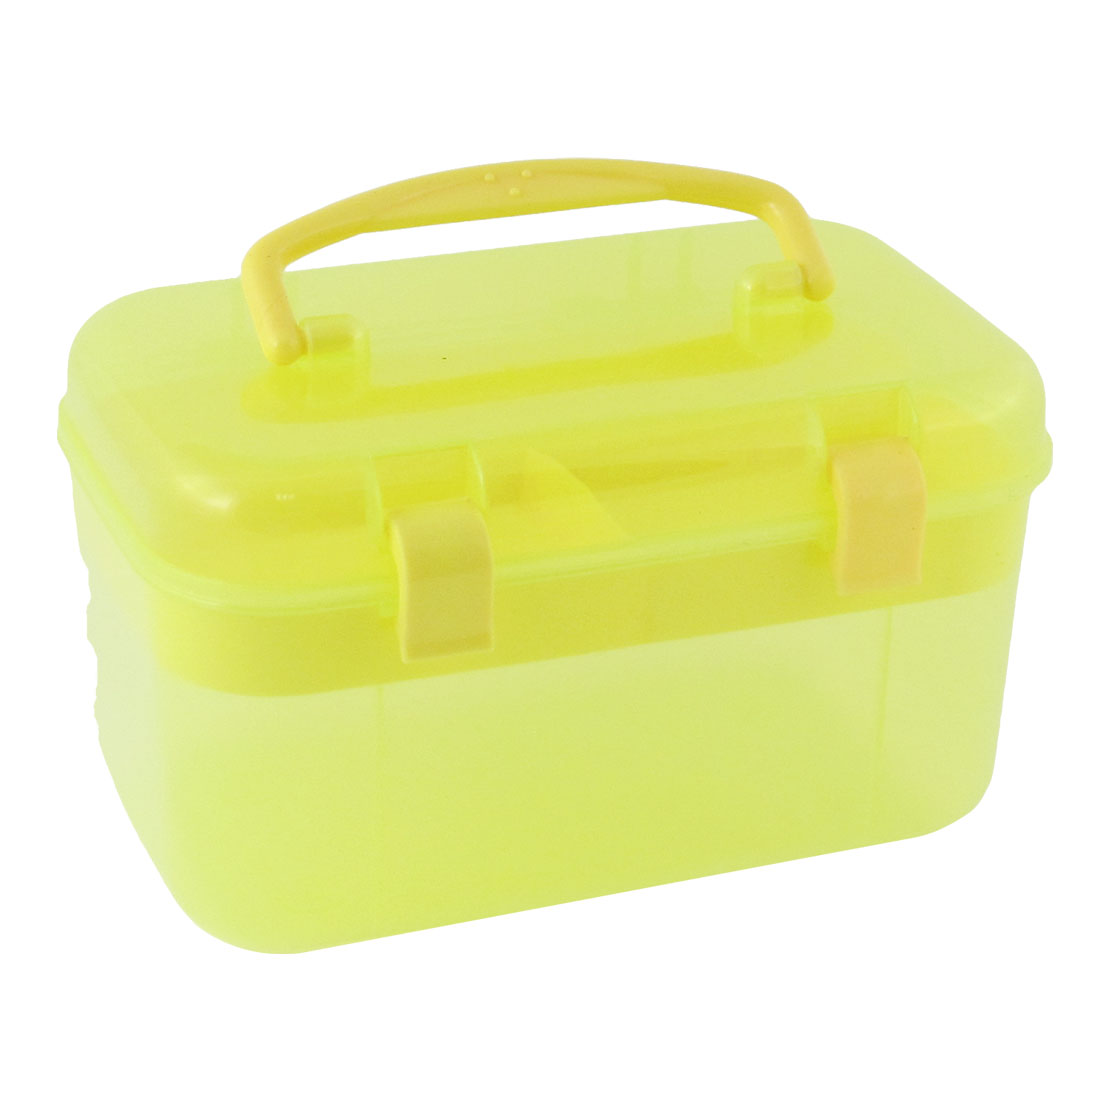 Dual Layers Cosmetic Components Container Storage Box Case Yellow w Handle